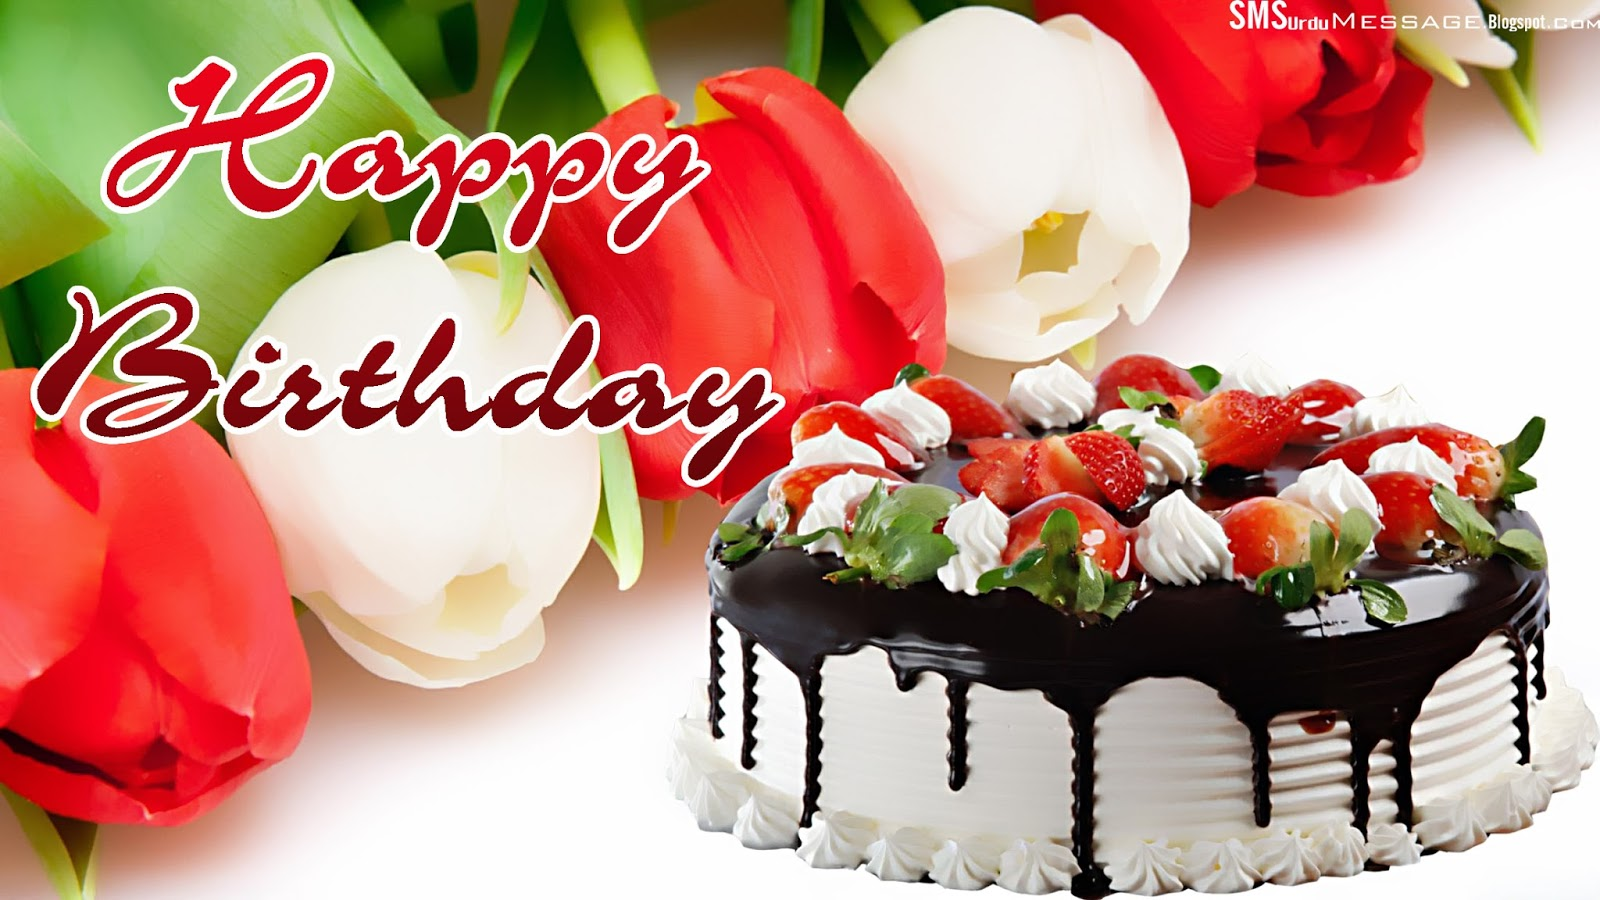 Happy Birthday Wallpaper Free Download Mobile